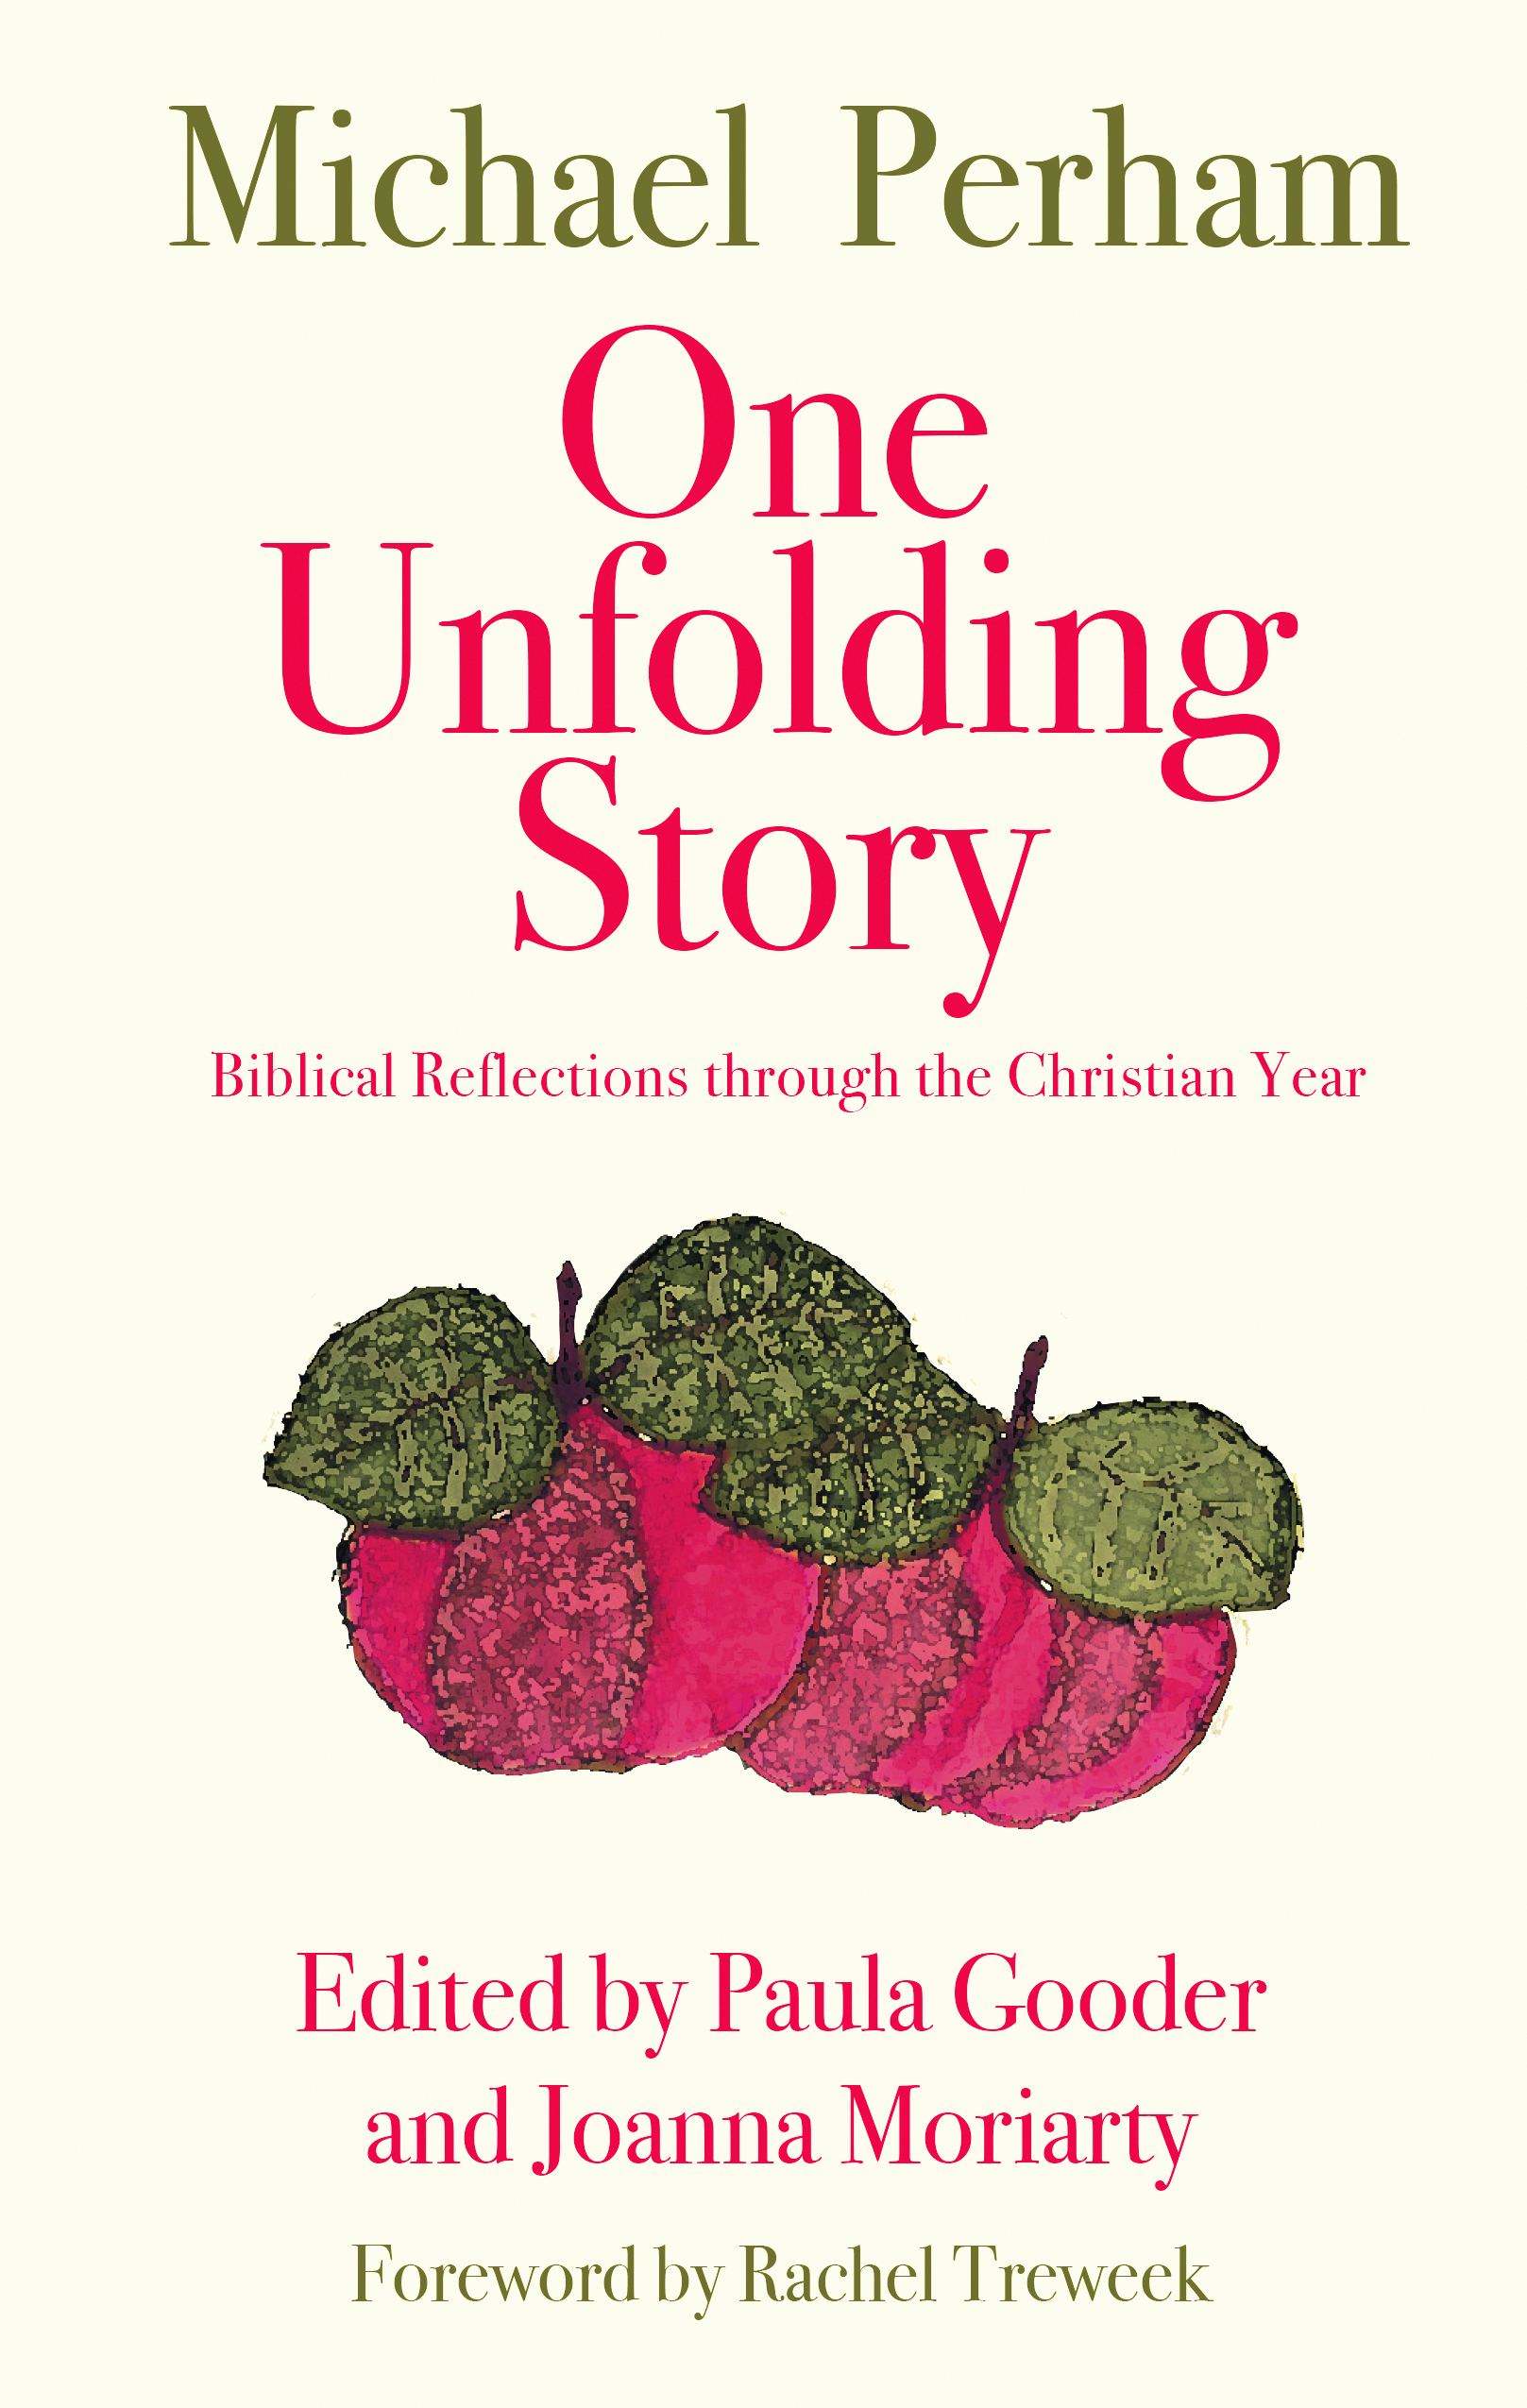 One Unfolding Story